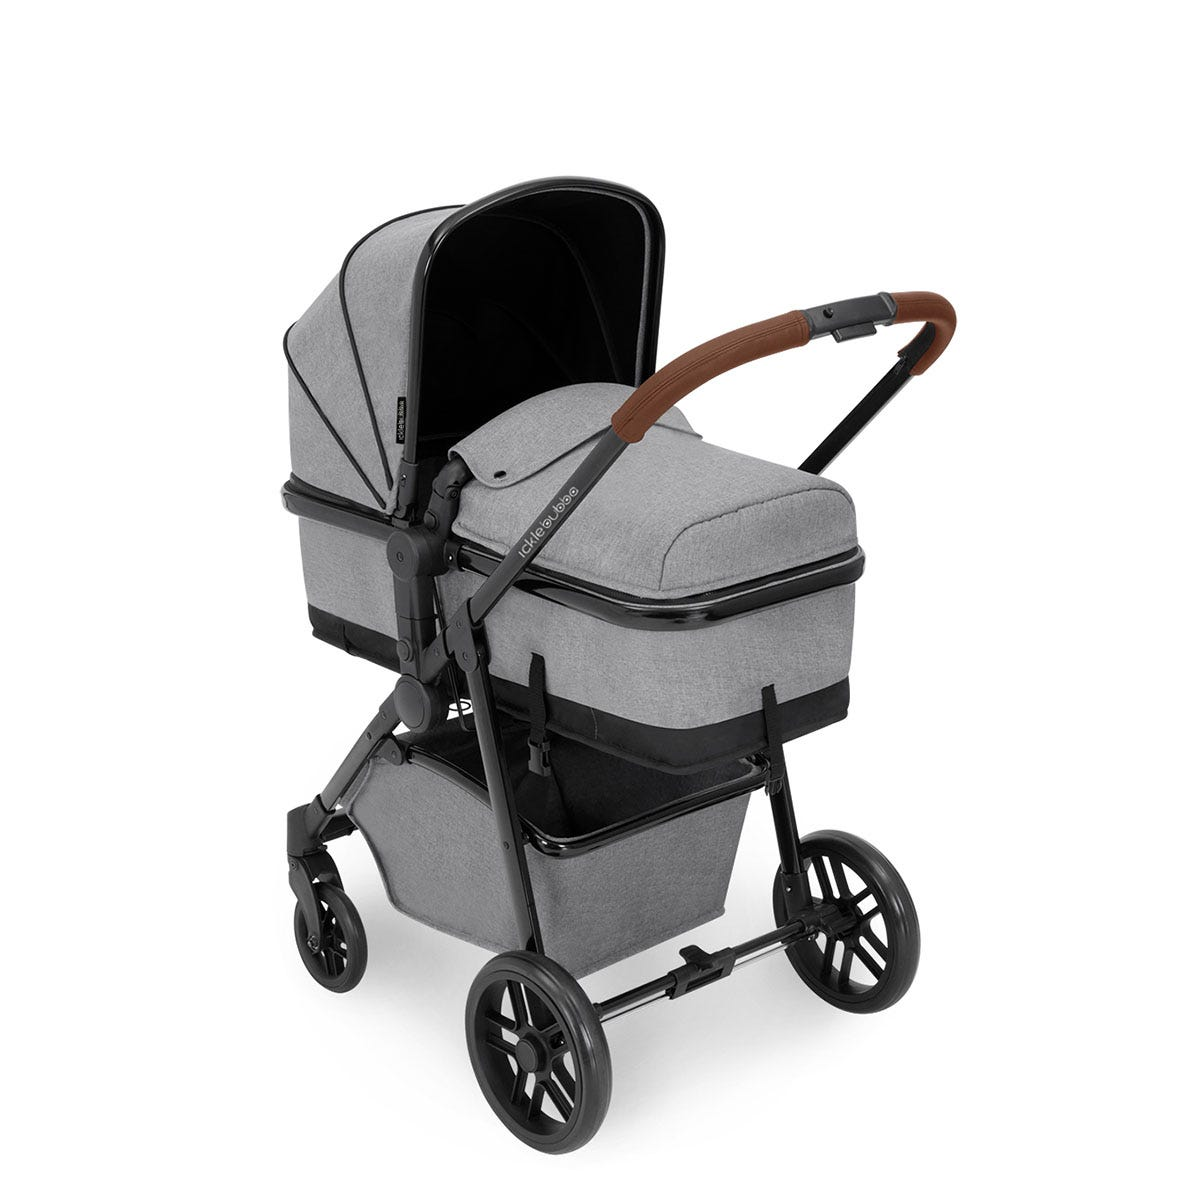 Ickle Bubba Moon i-Size 3 in 1 Travel System - Space Grey on Black with Tan Handles